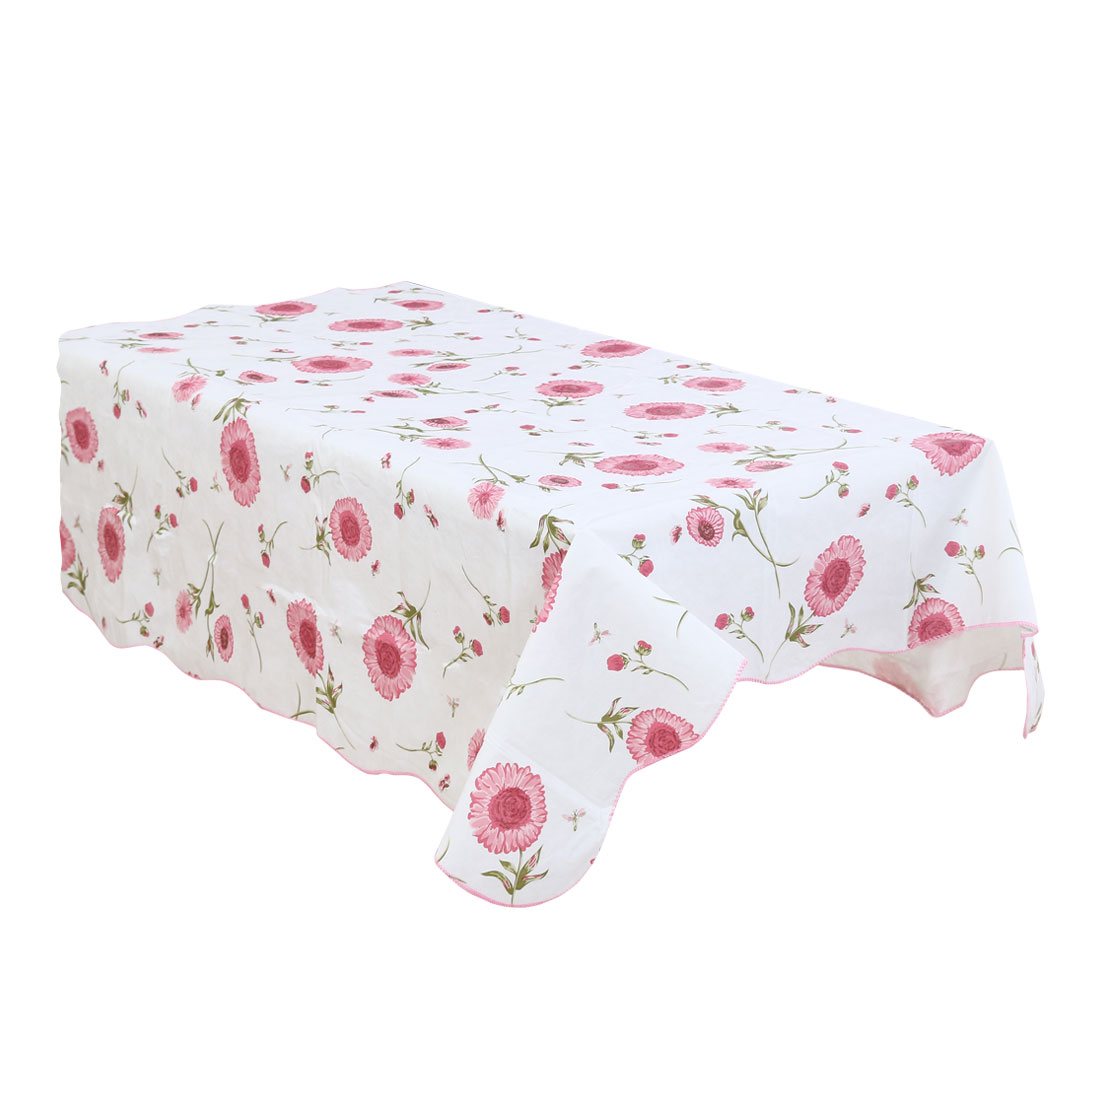 Home Picnic Sunflower Pattern Water Resistant Oil-proof Tablecloth Table Cloth Cover Pink 72 x 54 Inch